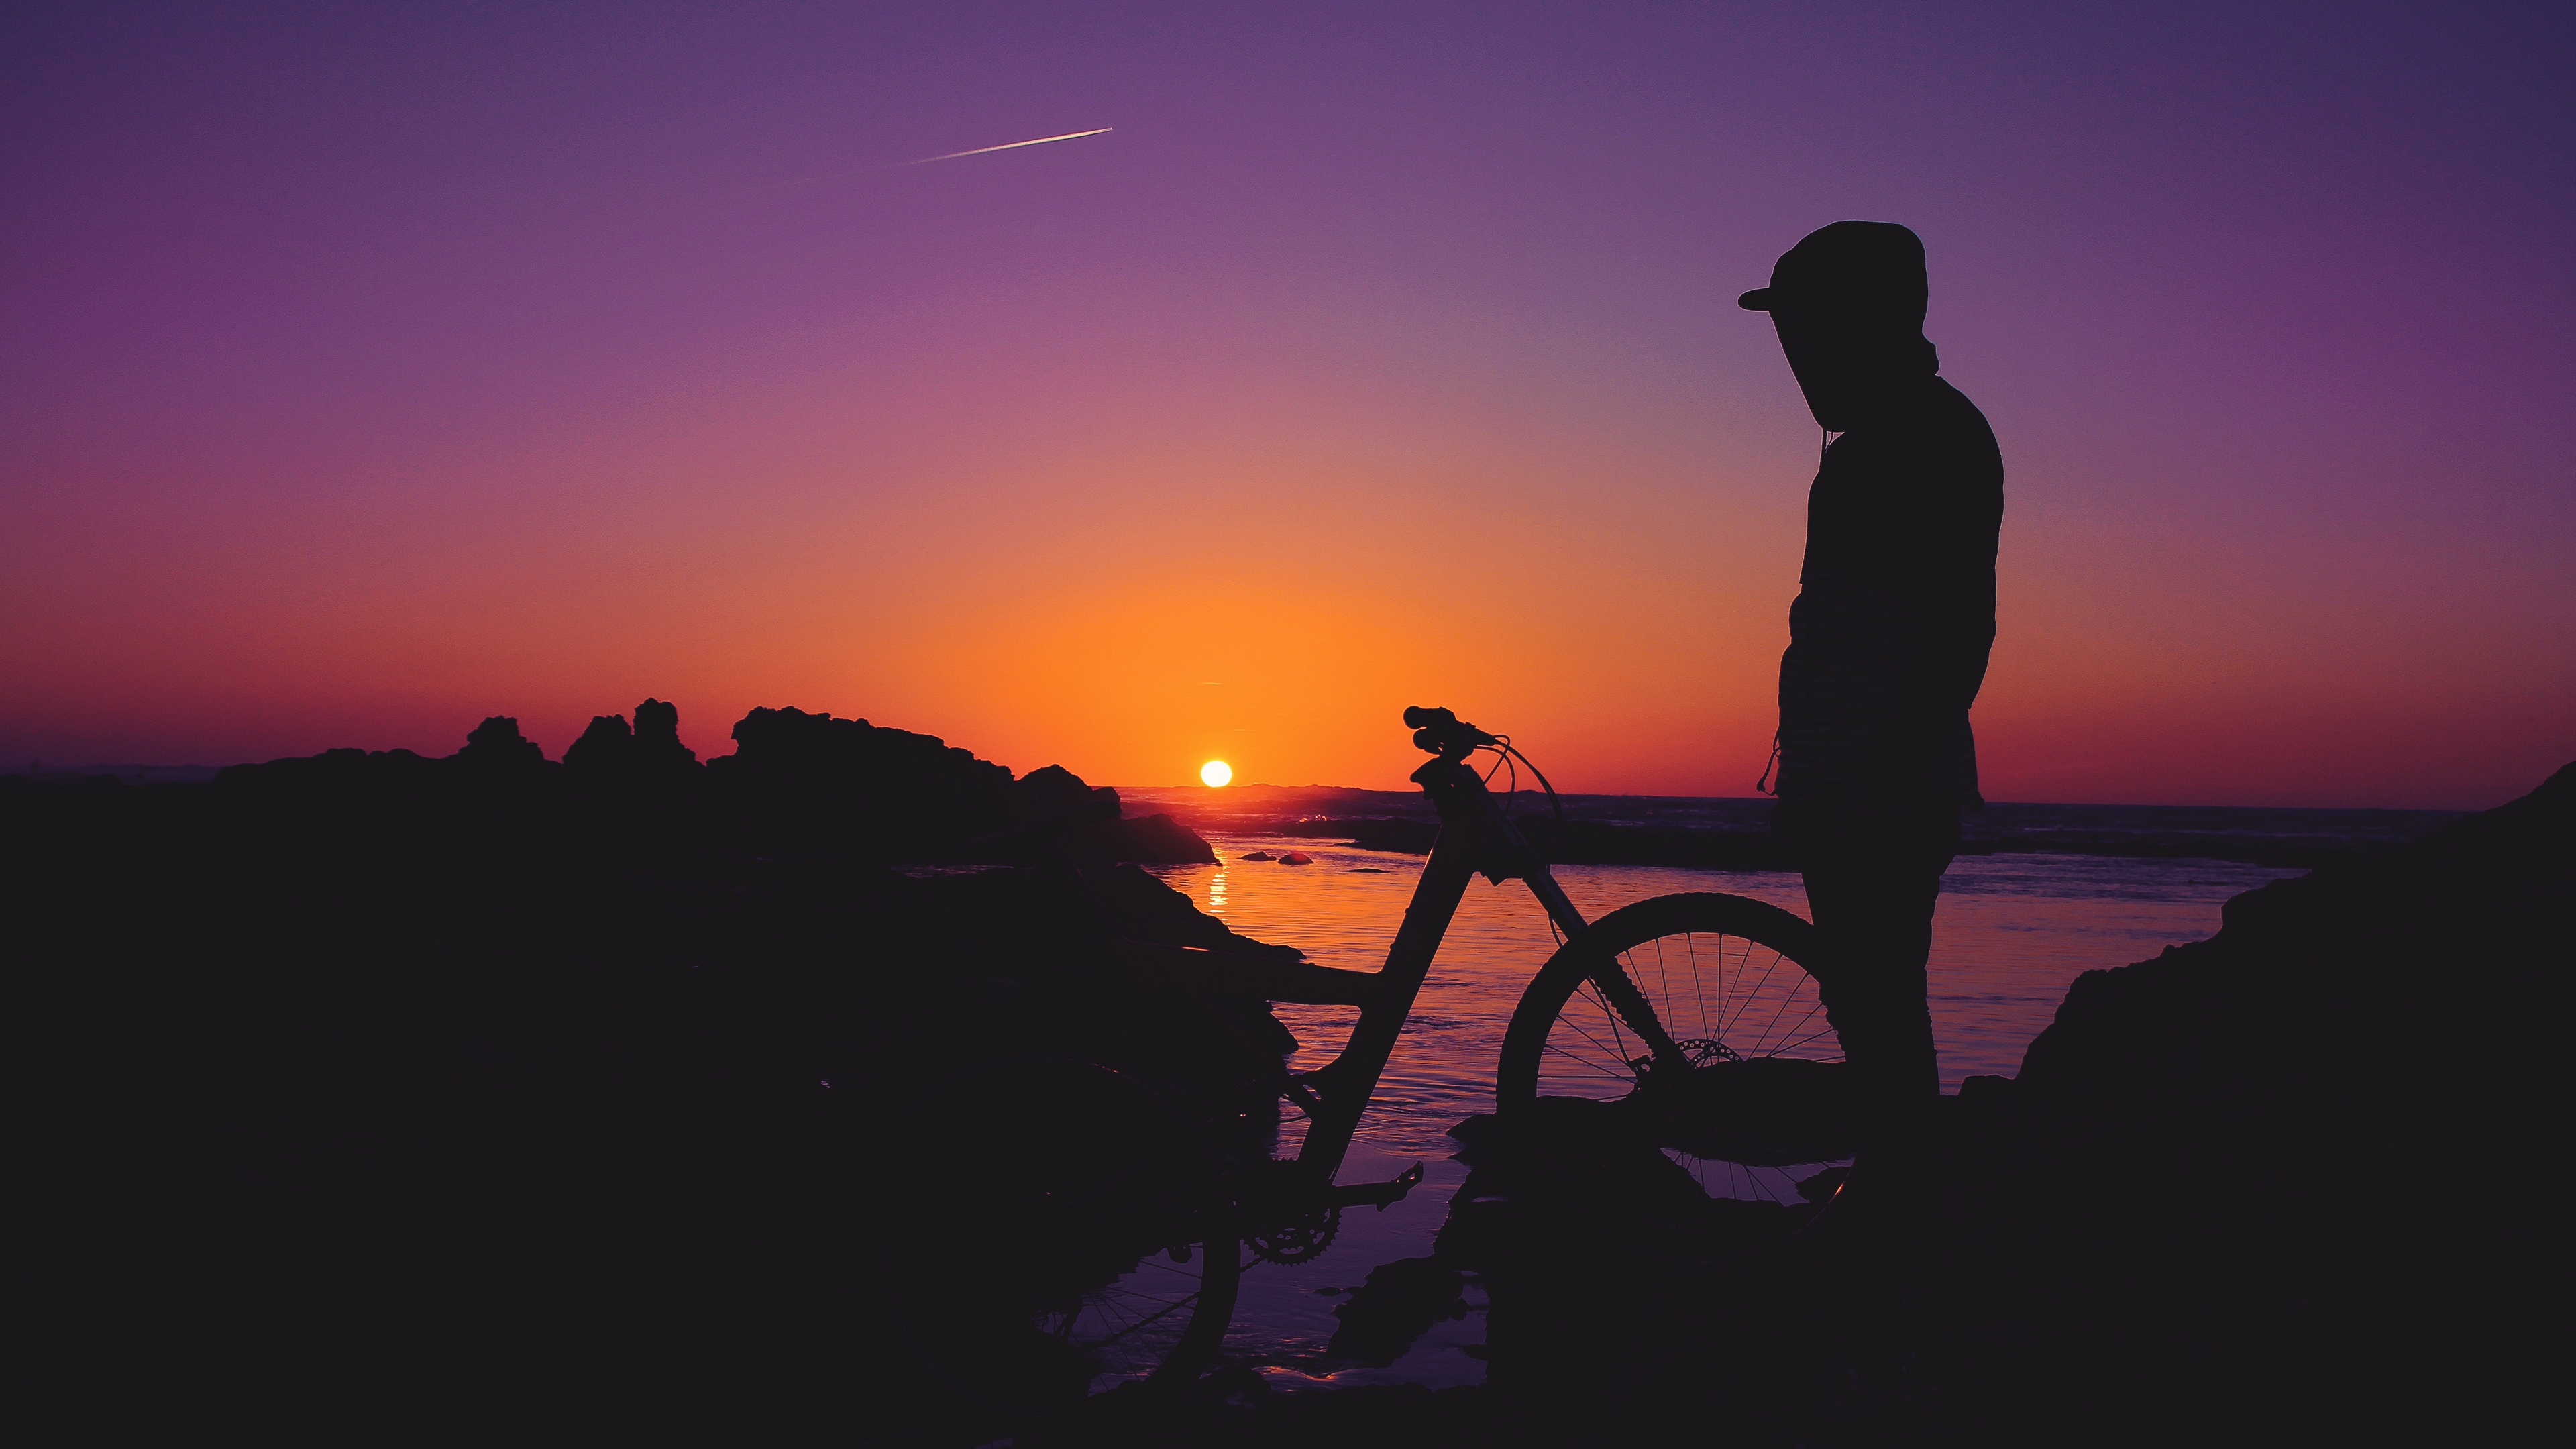 man silhouette bicycle sunset 4k 1540576069 - man, silhouette, bicycle, sunset 4k - Silhouette, Man, Bicycle